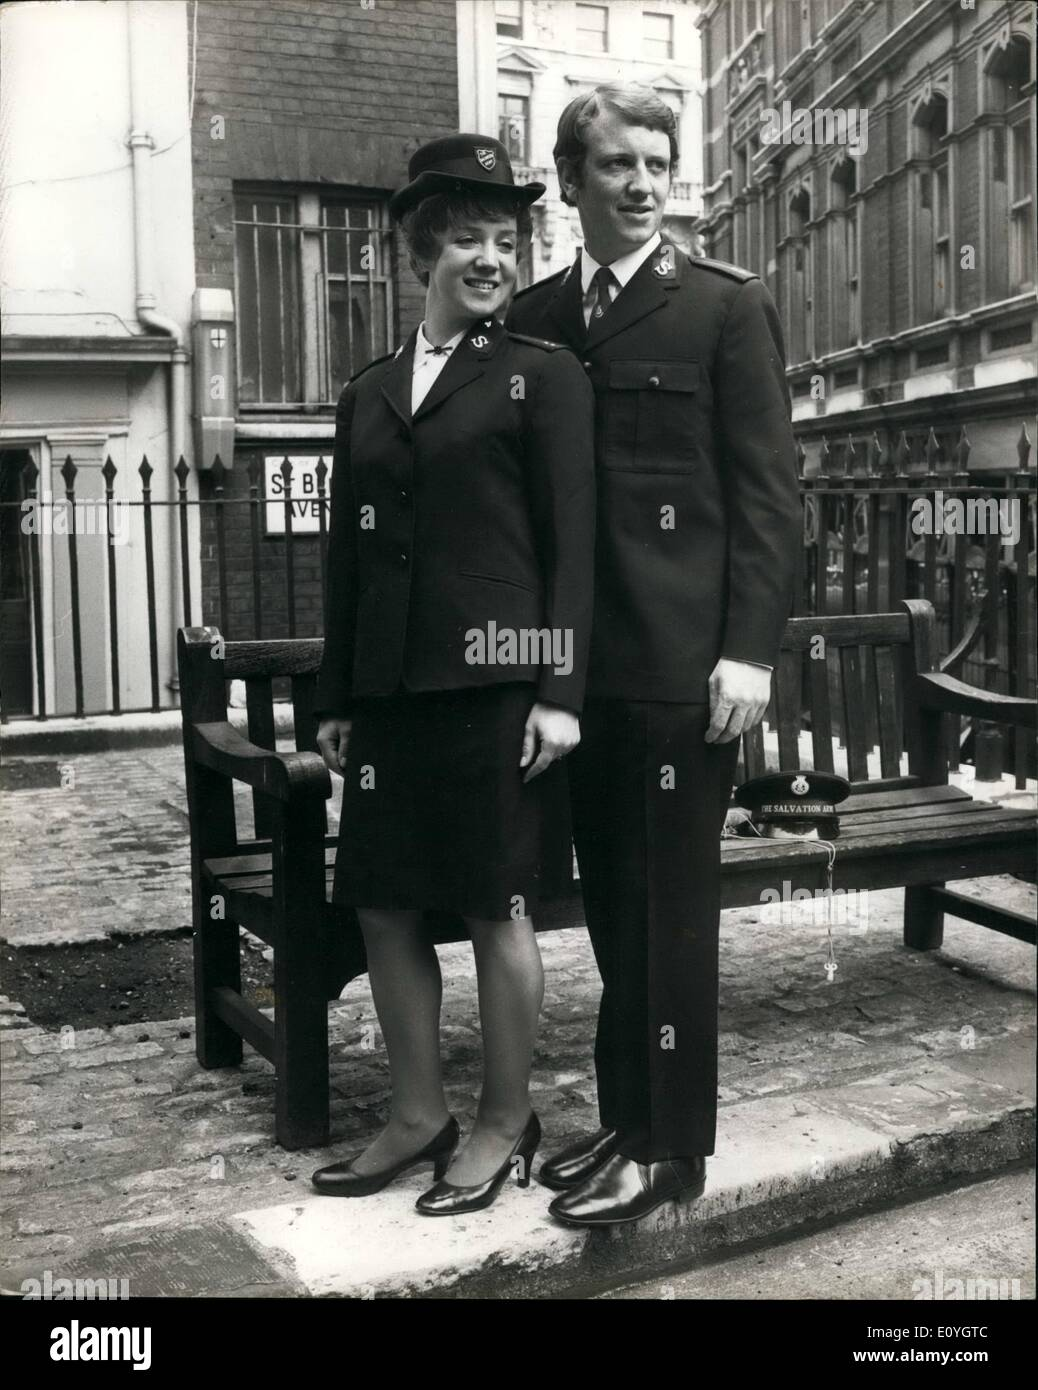 May 05, 1970 - New-Style Salvation Army Uniform for men and woman: A new-style uniform for salvationists was shown for the first time today. For officers - the Movement's full-time ministers - the new style is available for summer month only. For laypeople - the soldiers, bandsmen and songsters- the new uniform may be worn all the year round. But Traditionalists who wish to continue wearing the ''stand-up'' collar may still do so - Stock Image